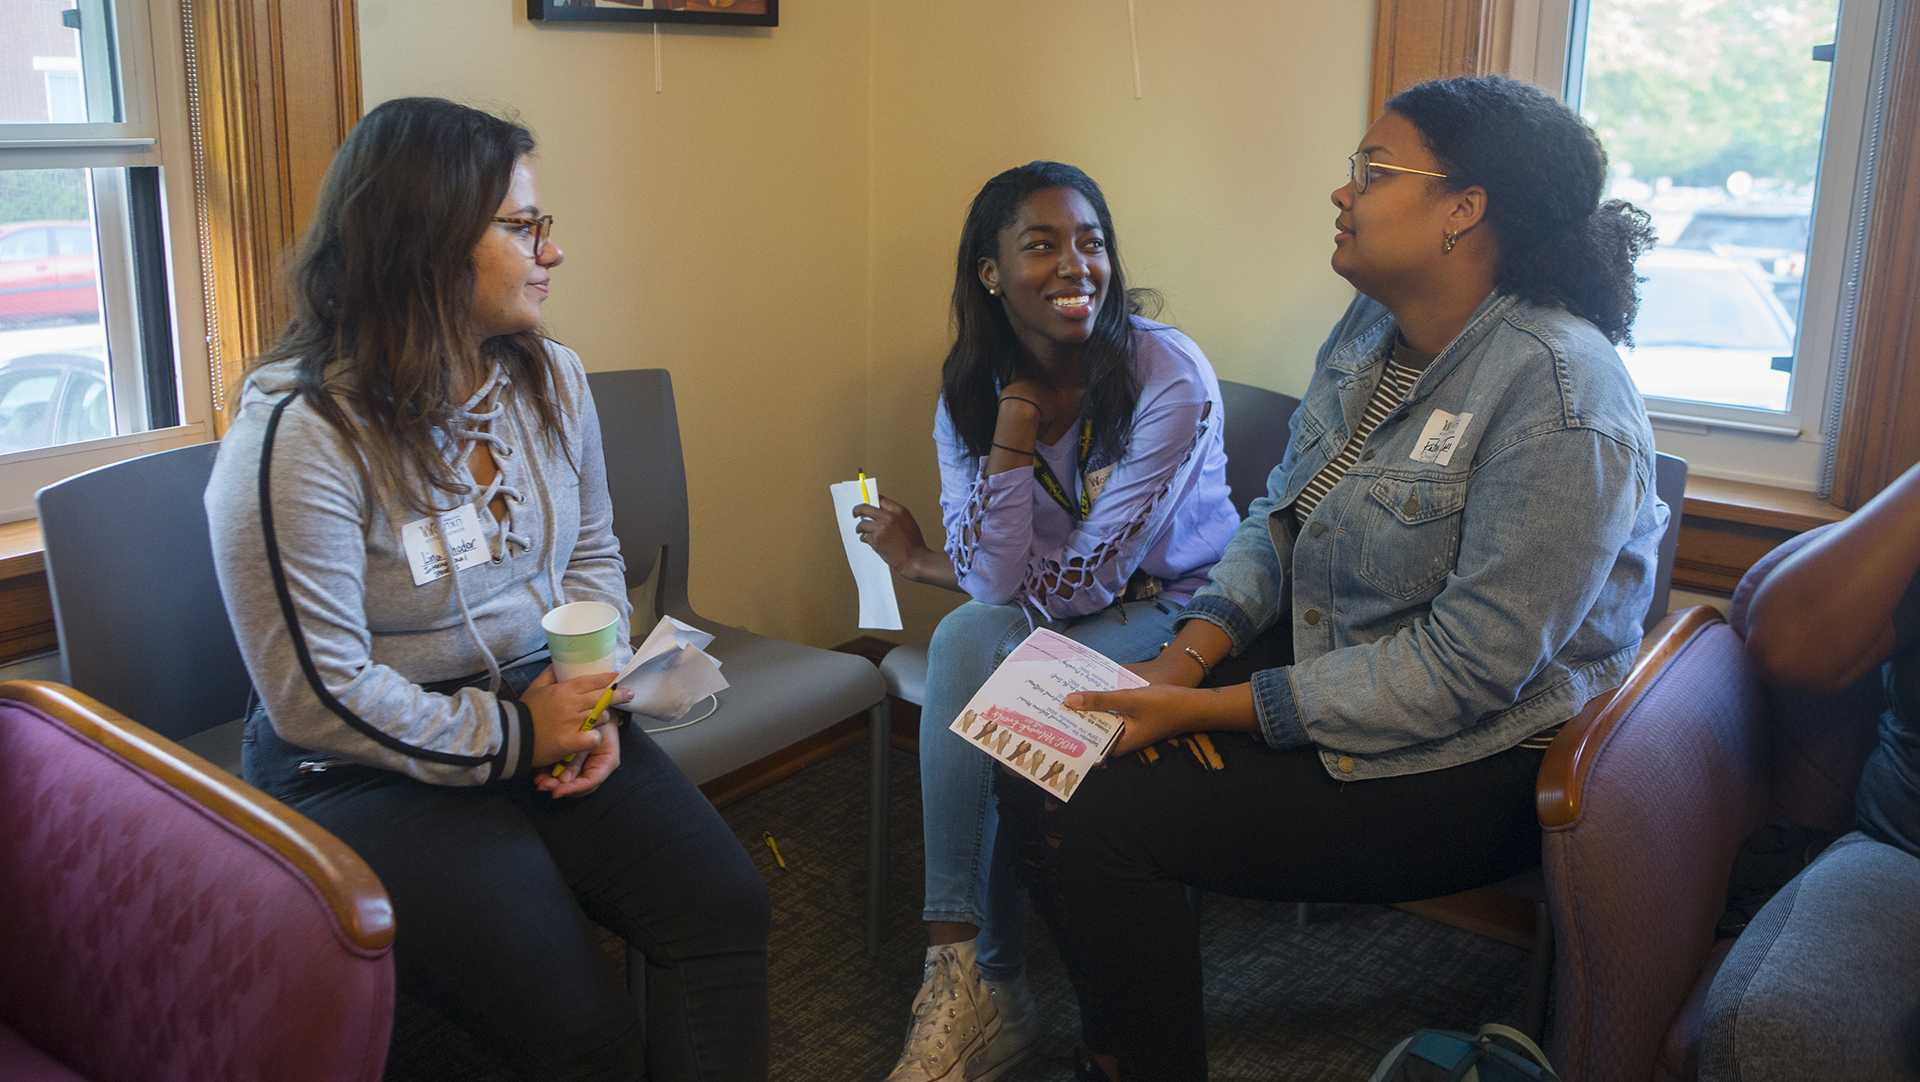 From left: UI students Lina Khodor, Felicia Ogunsanya, and Fatima Tall mingle during the Womxn of Colour Welcome Mixer at the Women's Resource and Action Center on Wednesday, Sep. 6, 2017. It was the inaugural event for the Womxn of Colour Network Series, and will feature a monthly program on a topic affecting womxn of color. (Lily Smith/The Daily Iowan)